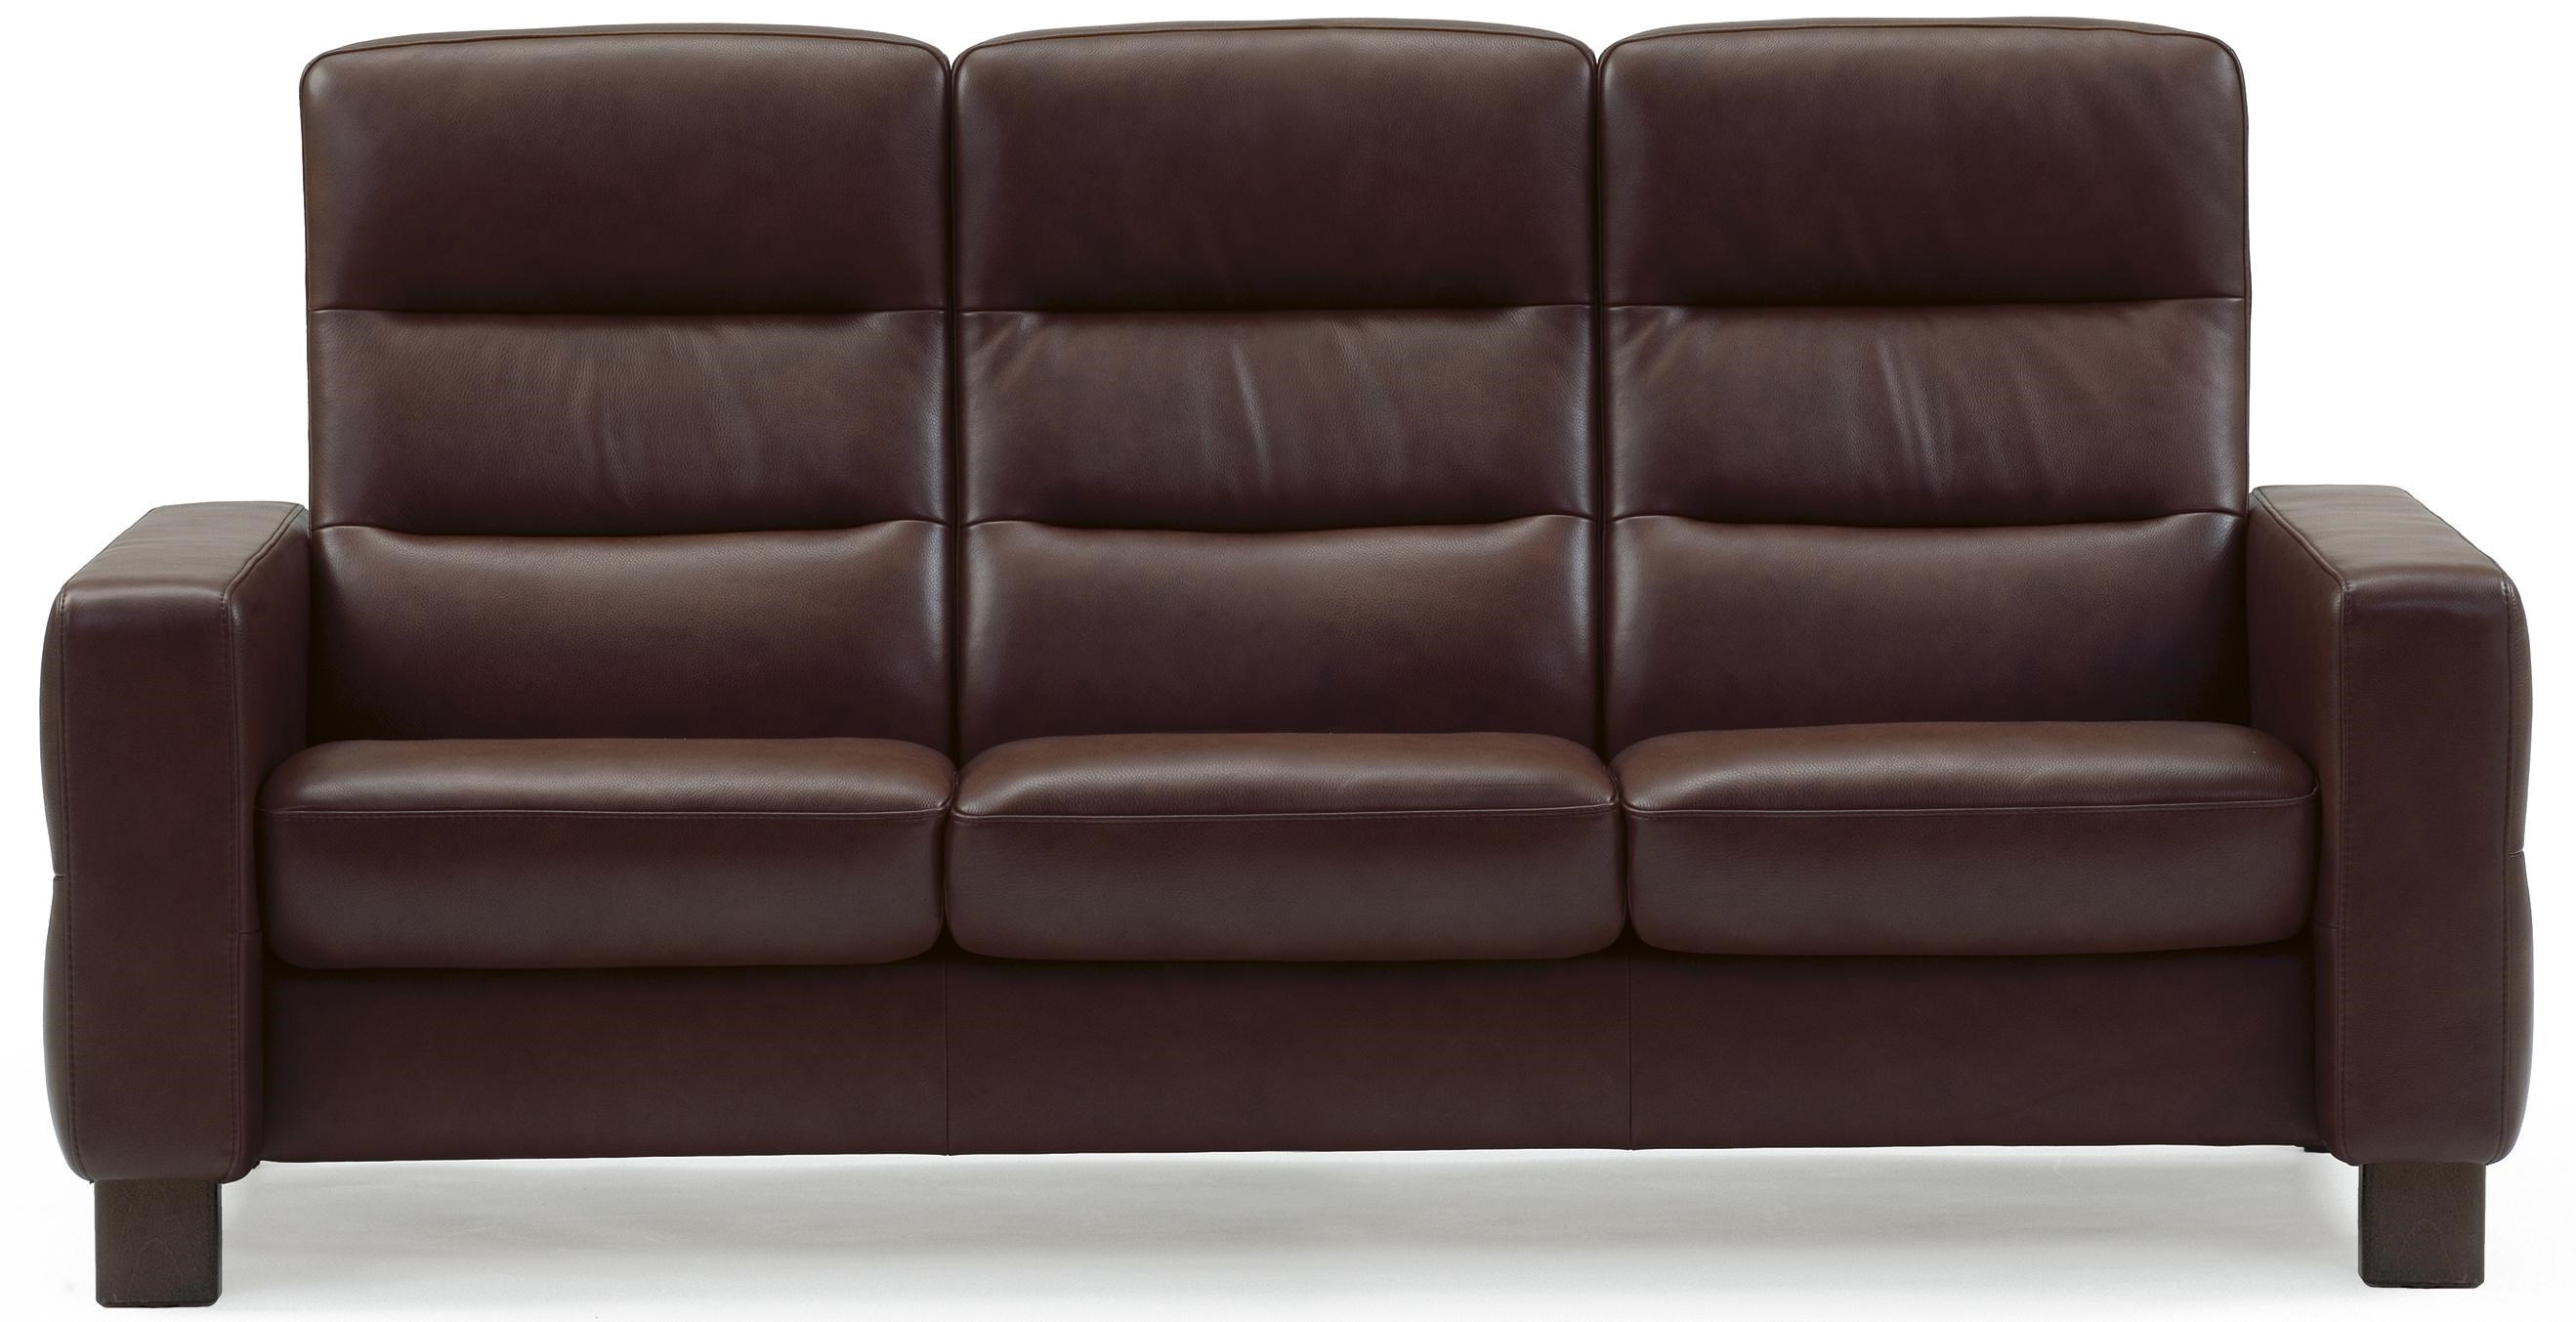 Stressless Sofa Cover High Back Reclining Sofa Muji Malaysia Highback Reclining